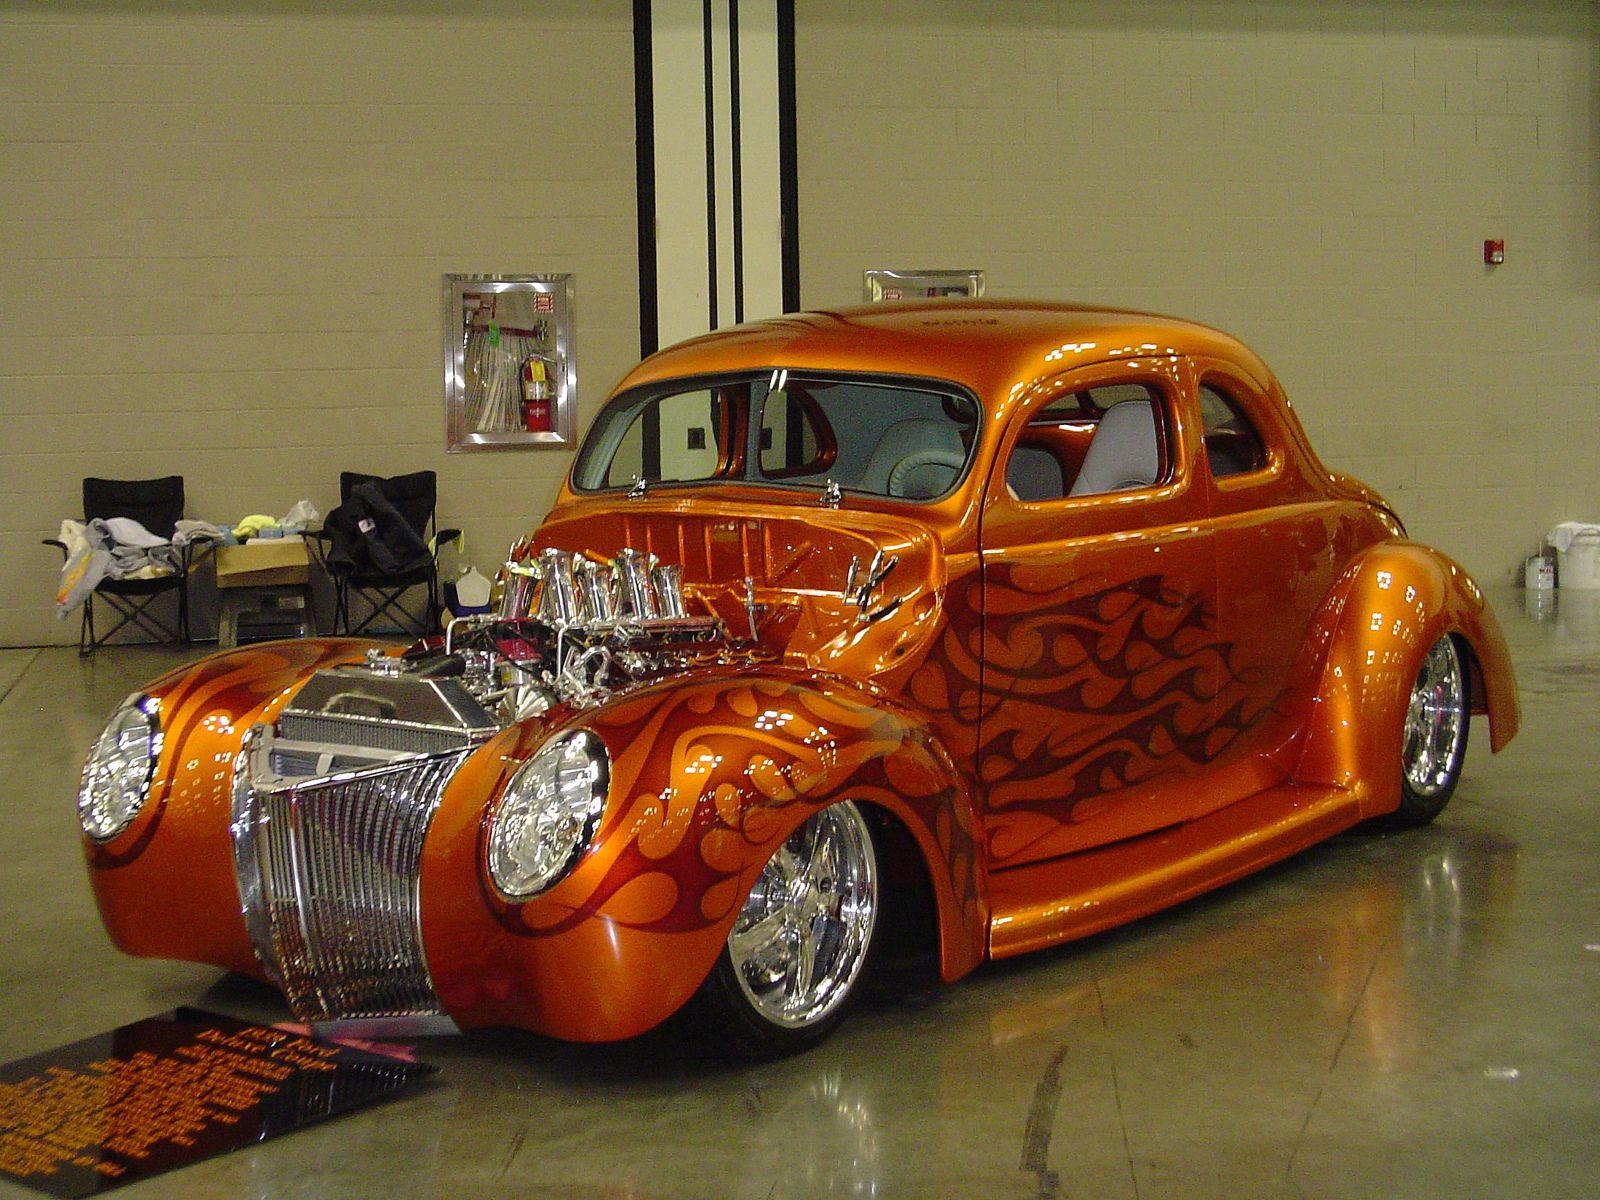 1939 Ford Hot Rod Coupe | pinterest.com/pin/1993547209774284… | Flickr